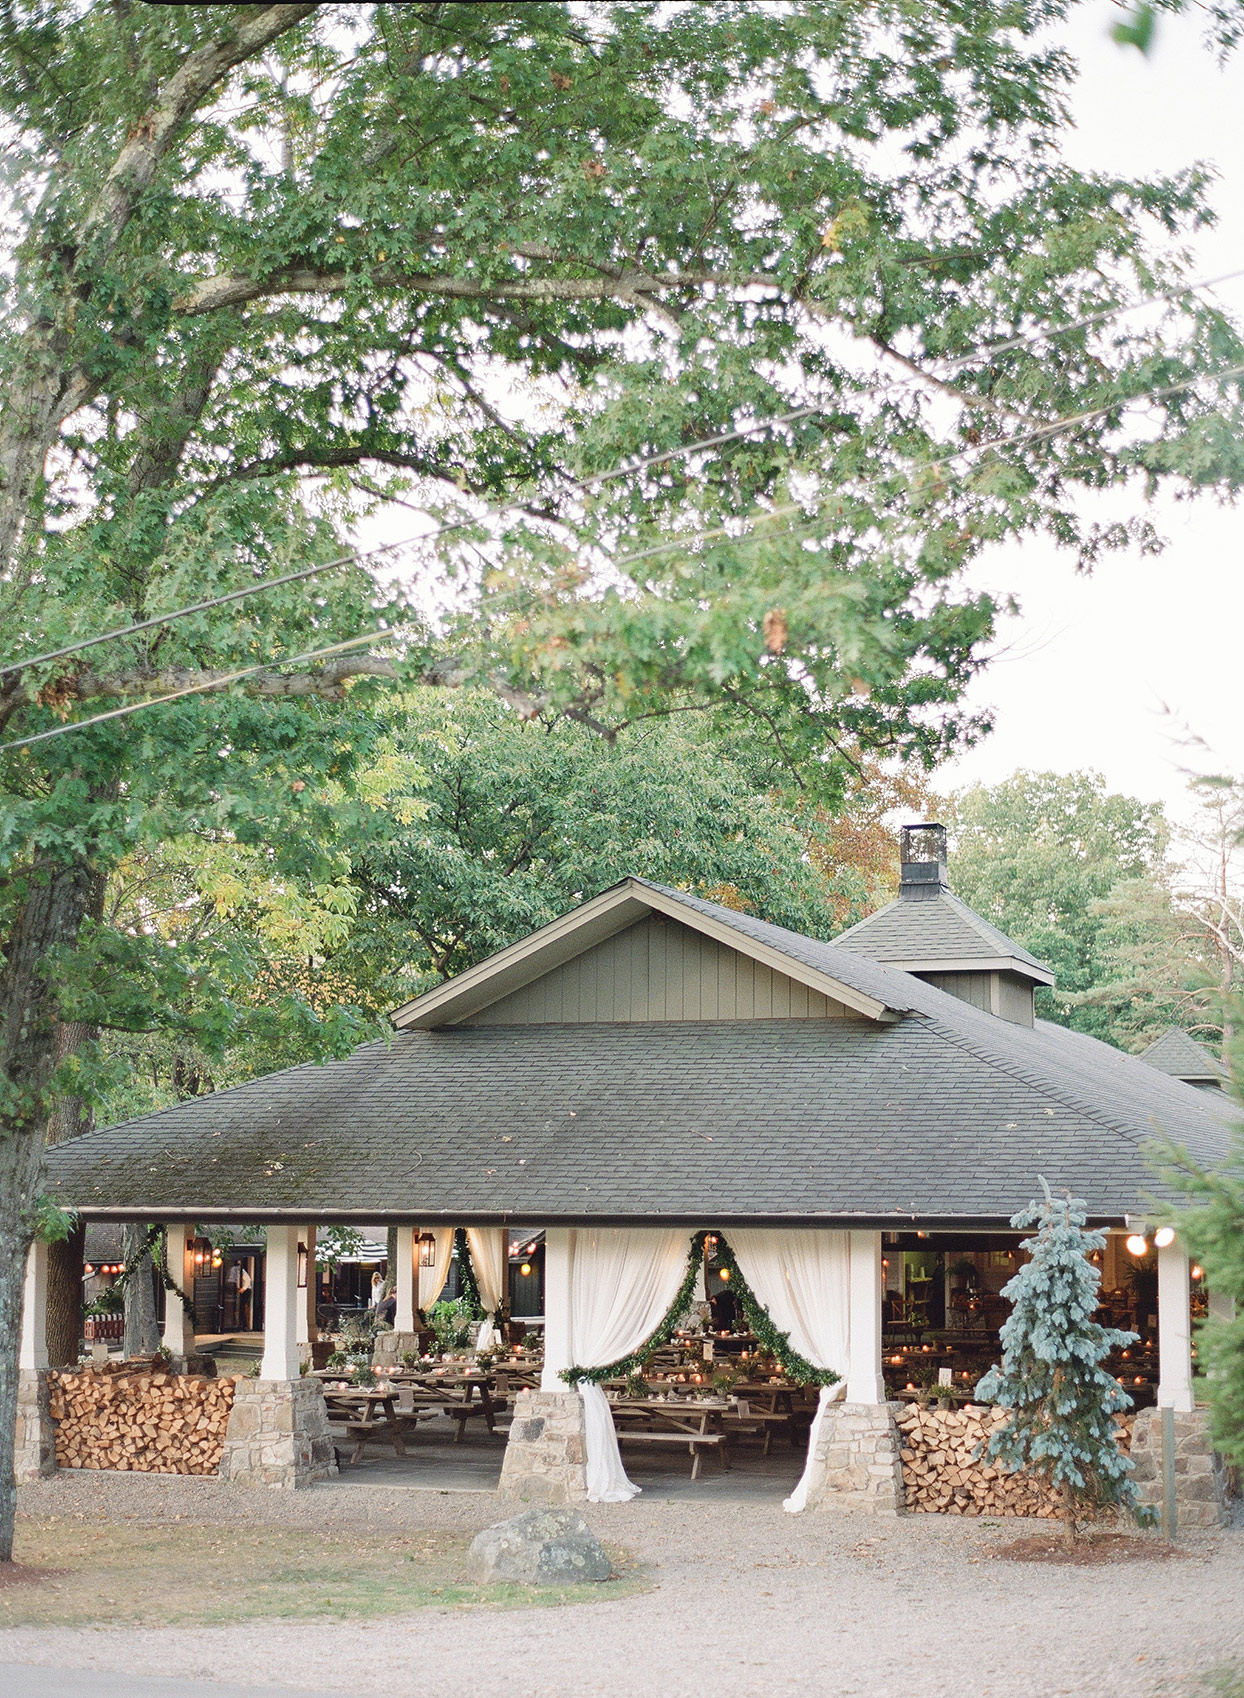 rehearsal dinner shelter tent venue during the day